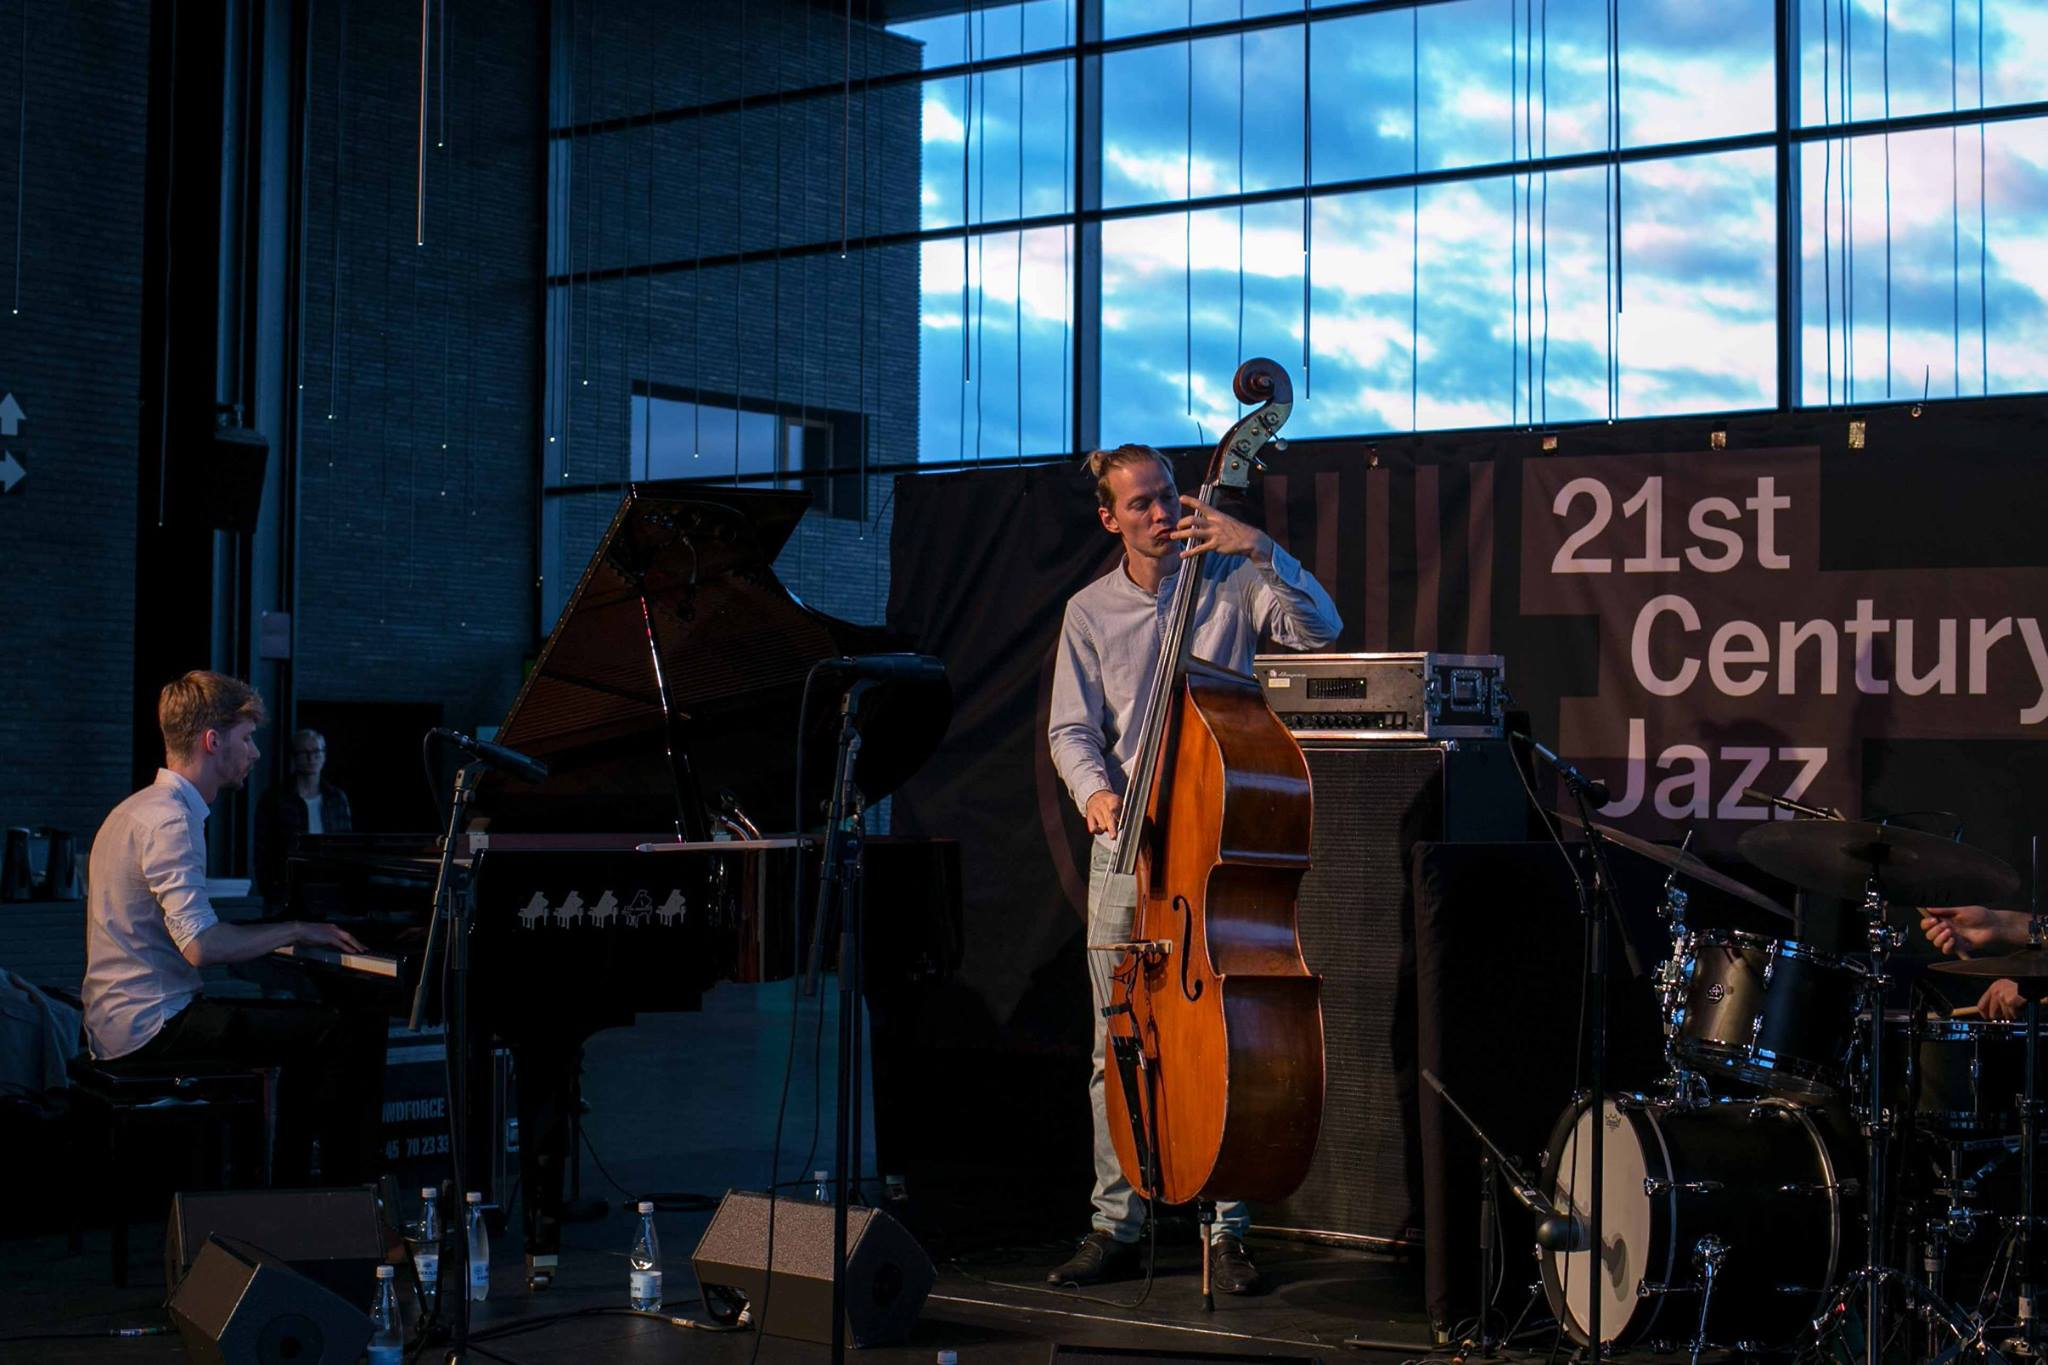 Copenhagen Jazz Festival with Jasper Høiby's Fellow Creatures, 2016